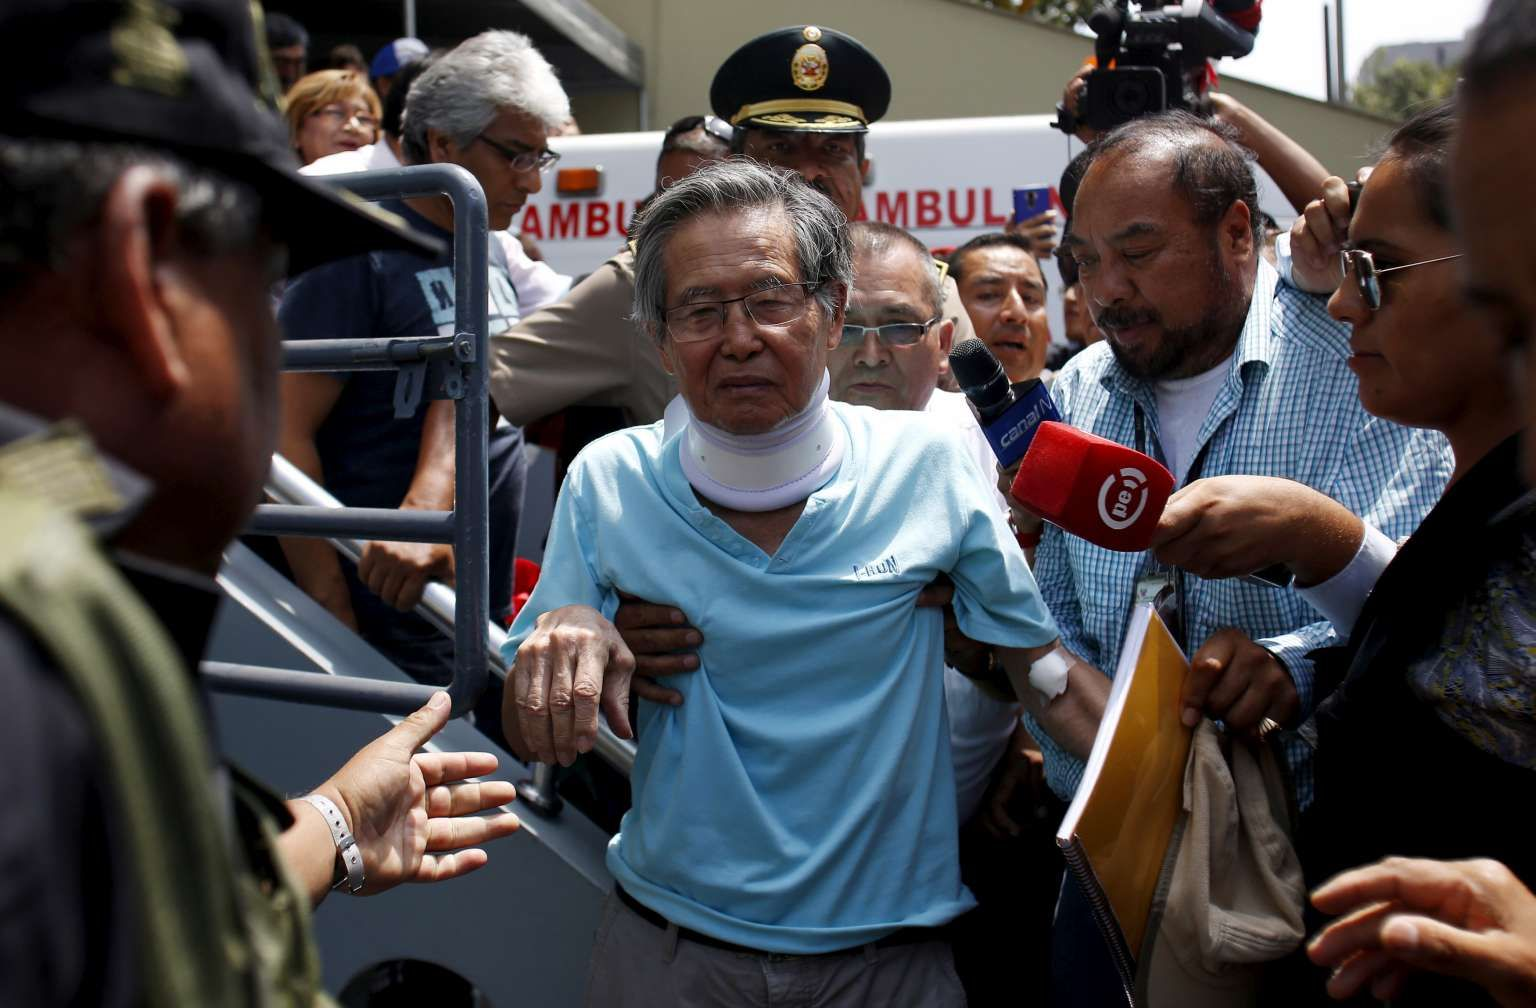 Fujimori seeks forgiveness after pardon protests